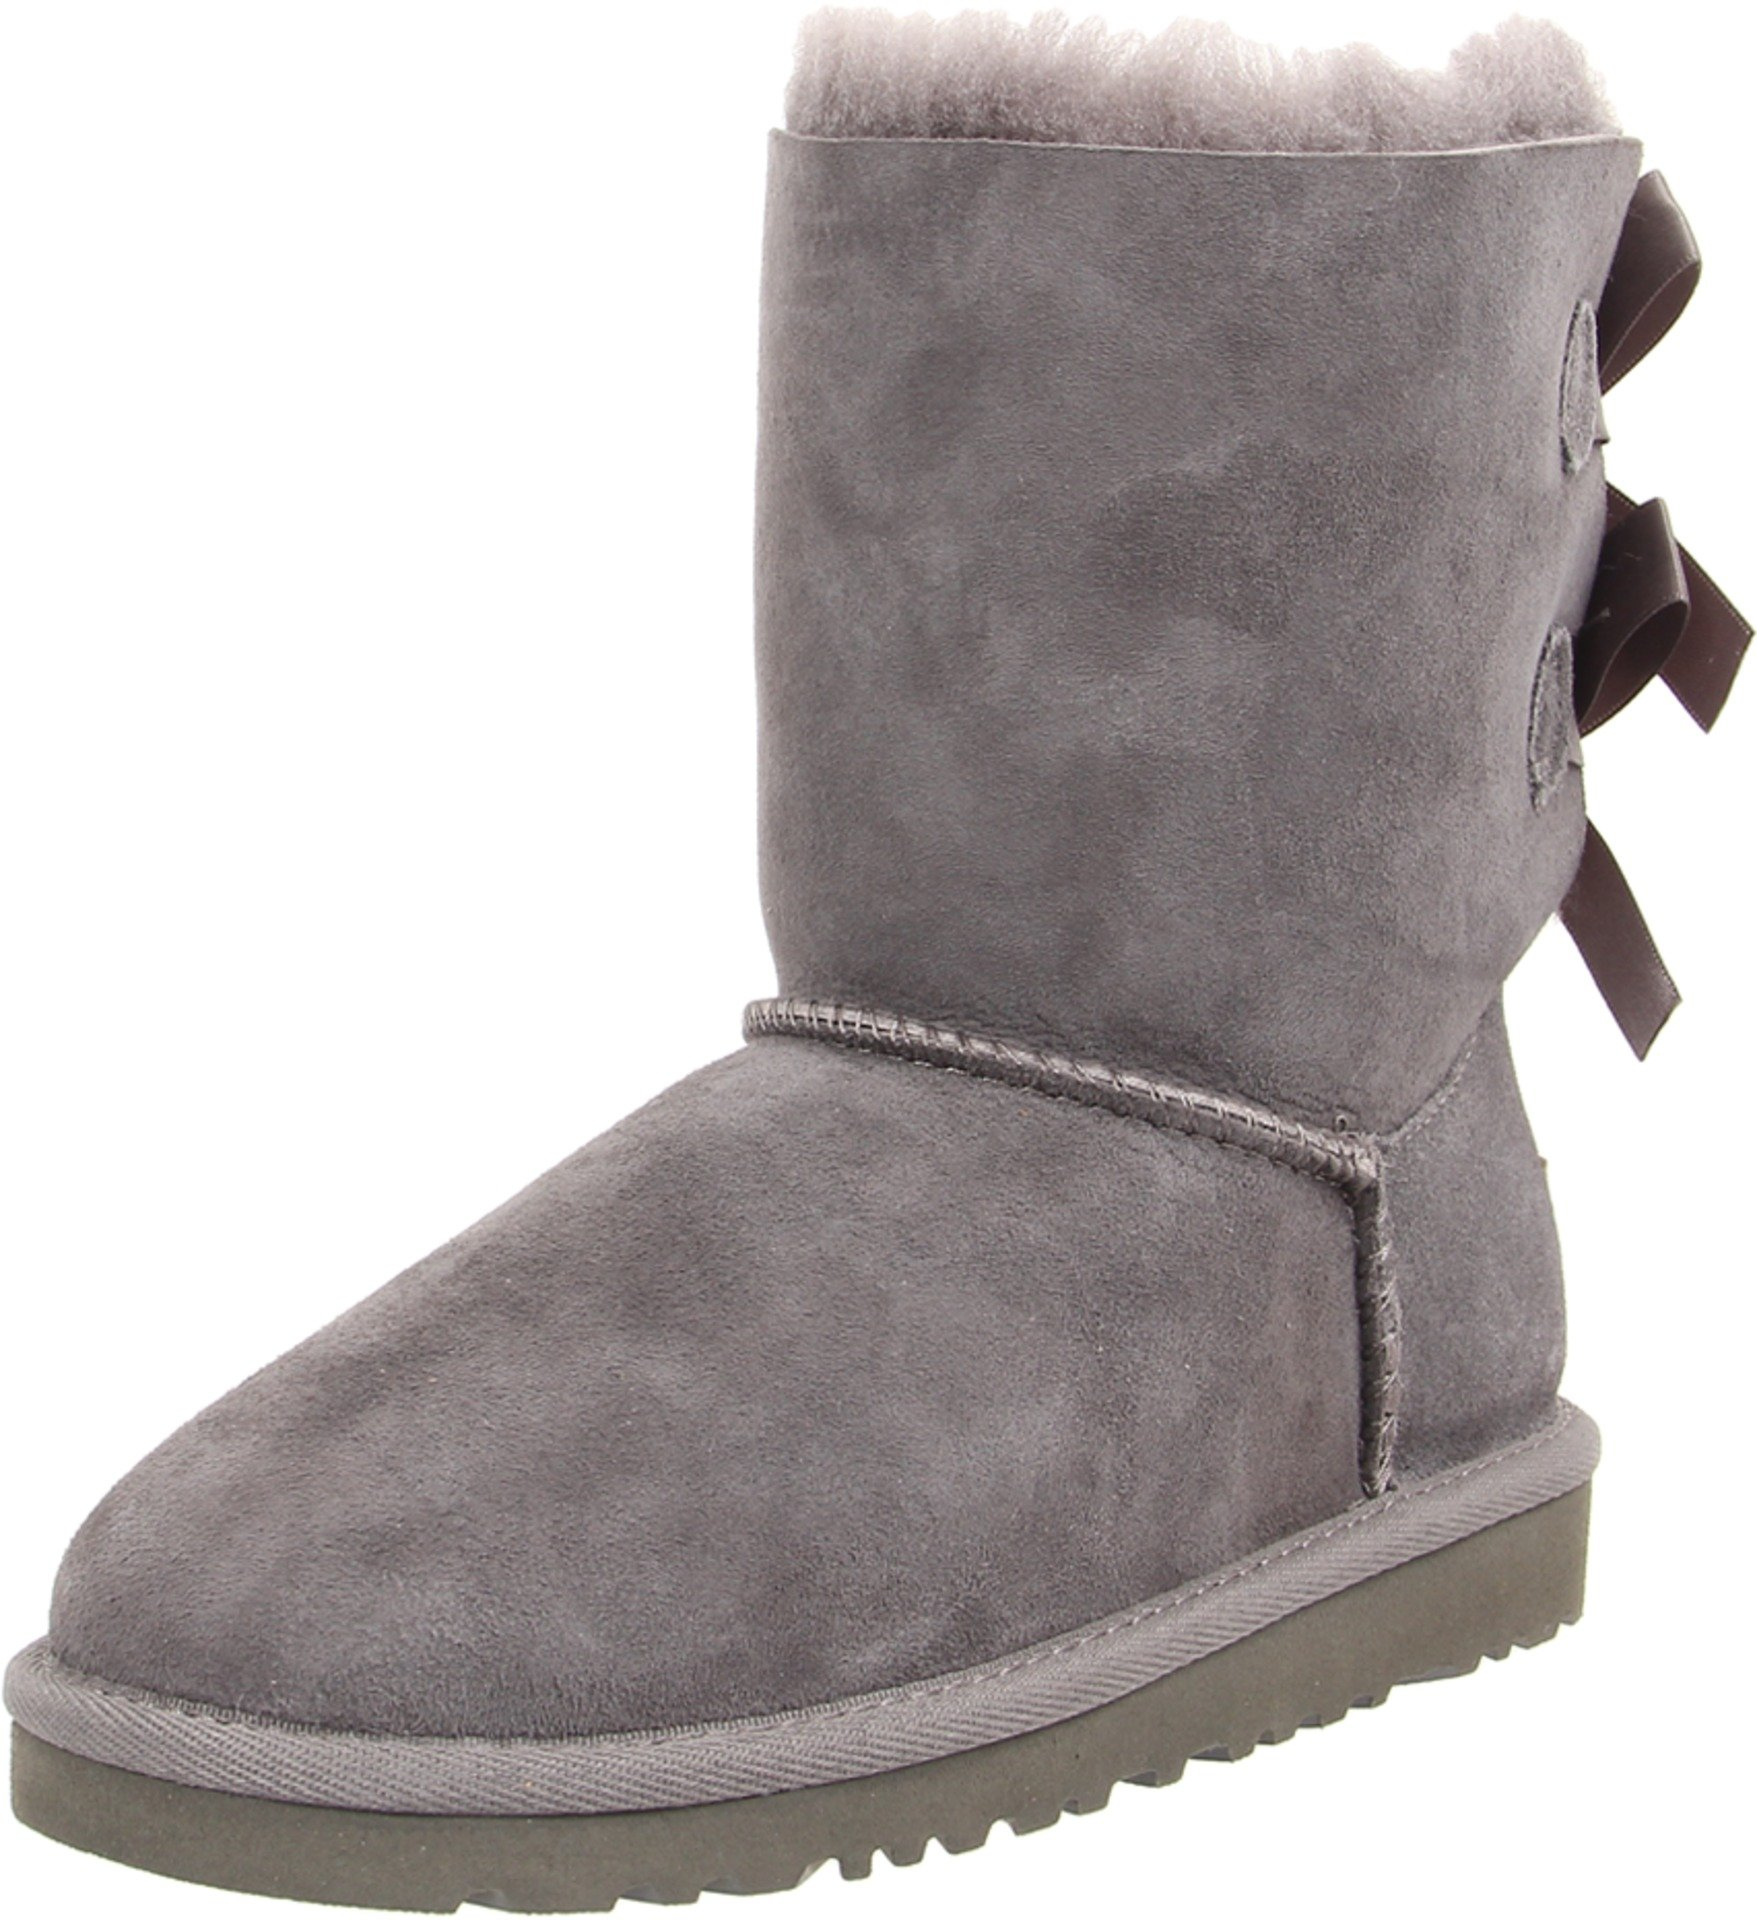 UGG Australia Girls' Bailey Bow Sheepskin Fashion Boot Grey 4 M US